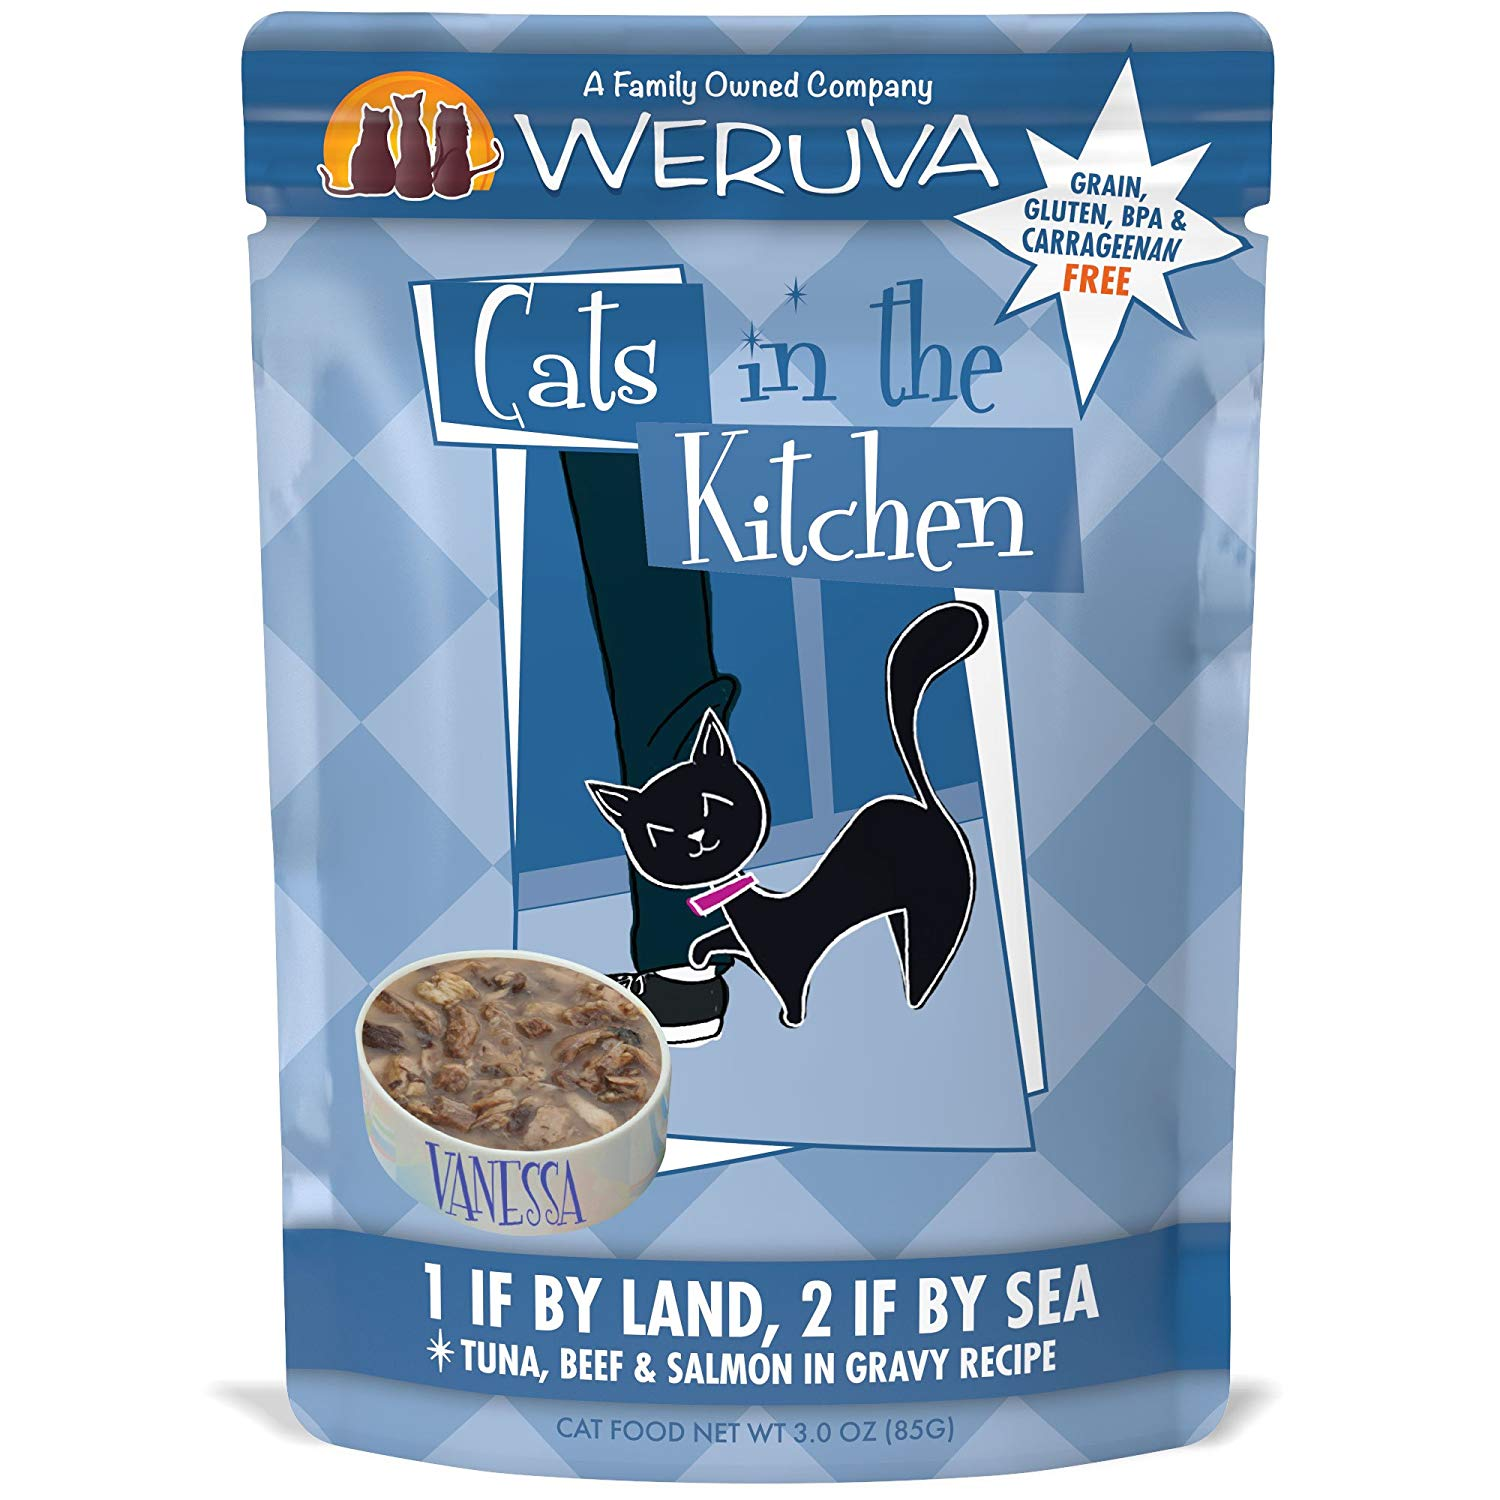 Weruva Cats in the Kitchen 1 If By Land, 2 If By Sea Tuna, Beef & Salmon in Gravy Grain-Free Wet Cat Food, 3-oz